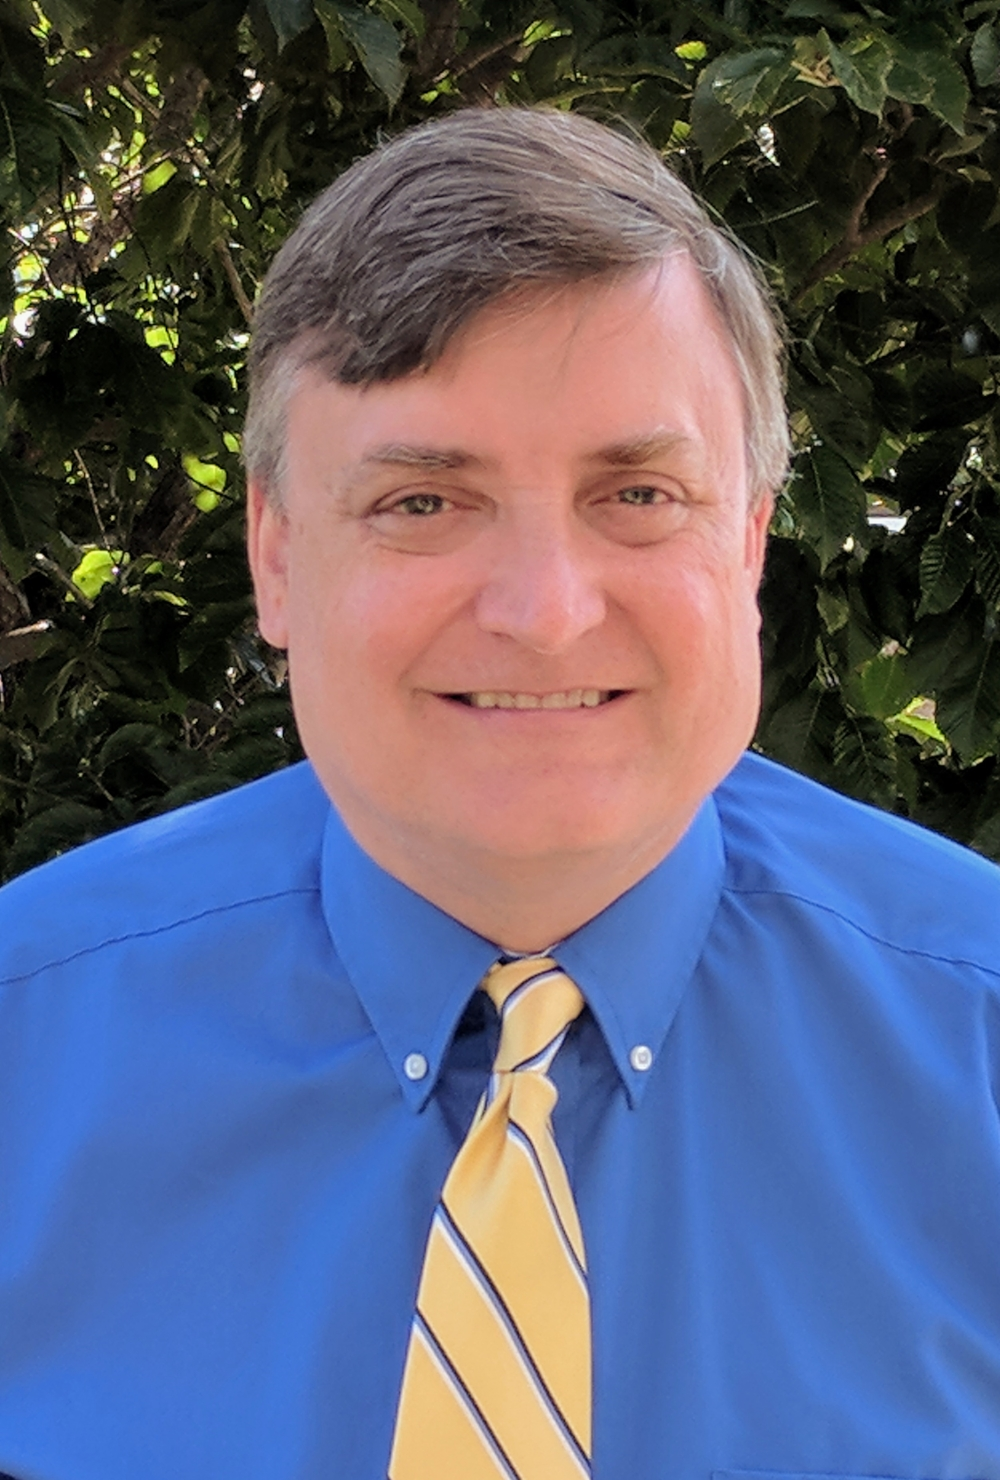 Rev. William A. Beltle has been in ministry for 28 years, serving at churches in Carteret and Avon-by-the-Sea before coming to Hillsborough. This is Pastor Bill's second term at FBC having served as pastor from January 2007 to December 2015. Pastor Bill has two masters degrees: an M.Div. from Seminary of the East and an M.A. in American history from Rutgers University. Bill and his wife, Tammy, celebrated 25 years of marriage in the Spring of 2018. They have twin boys Liam and Gavin.